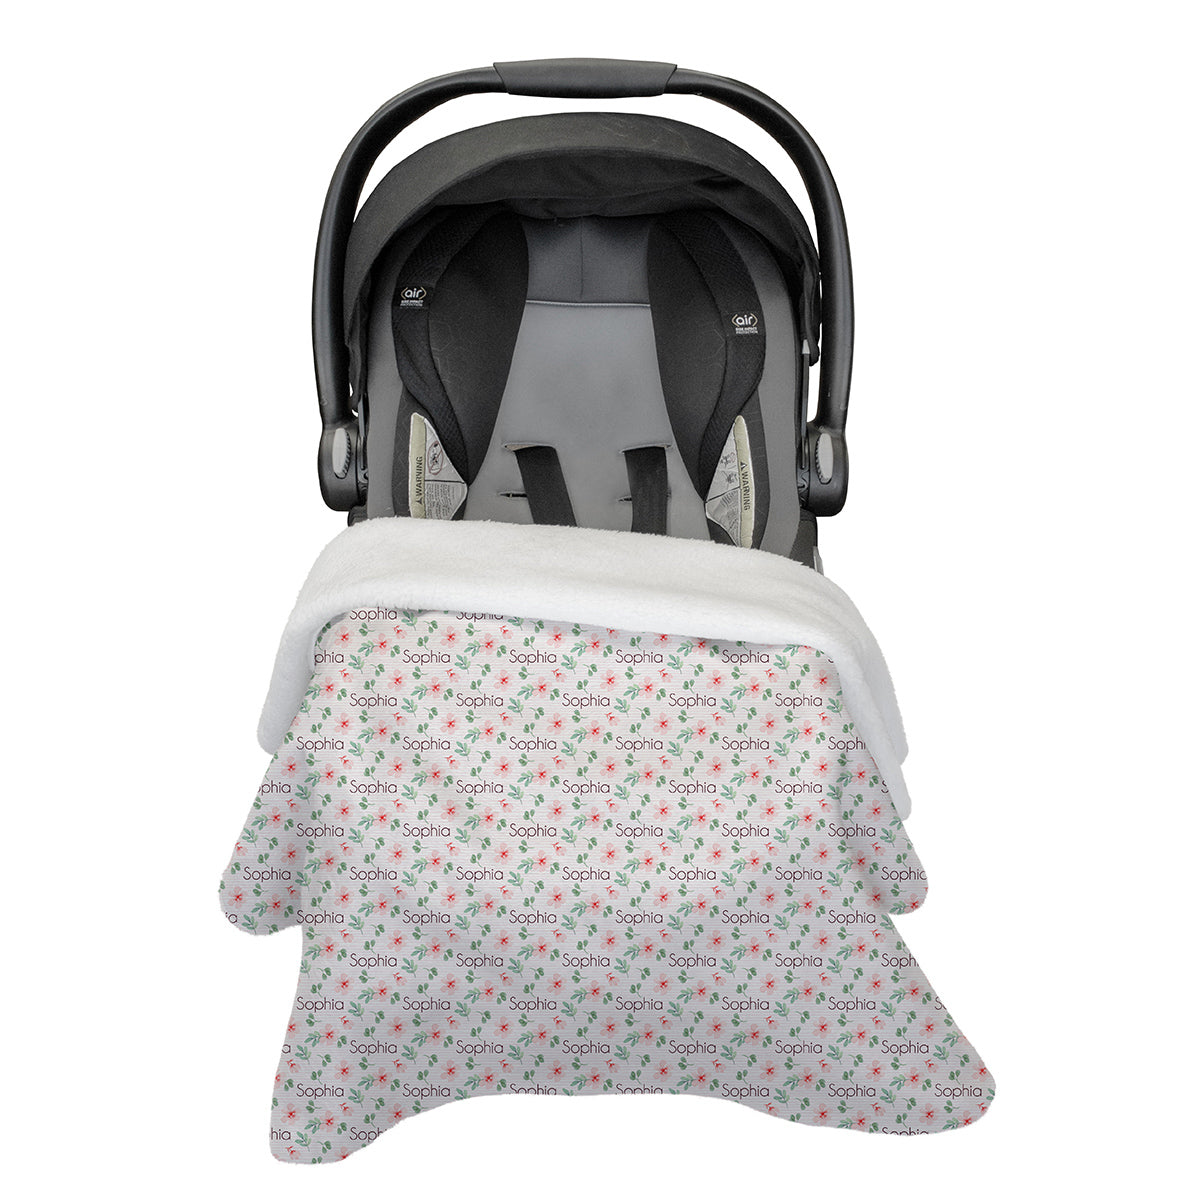 Sophia's Pinstriped Impatiens | Car Seat Blanket